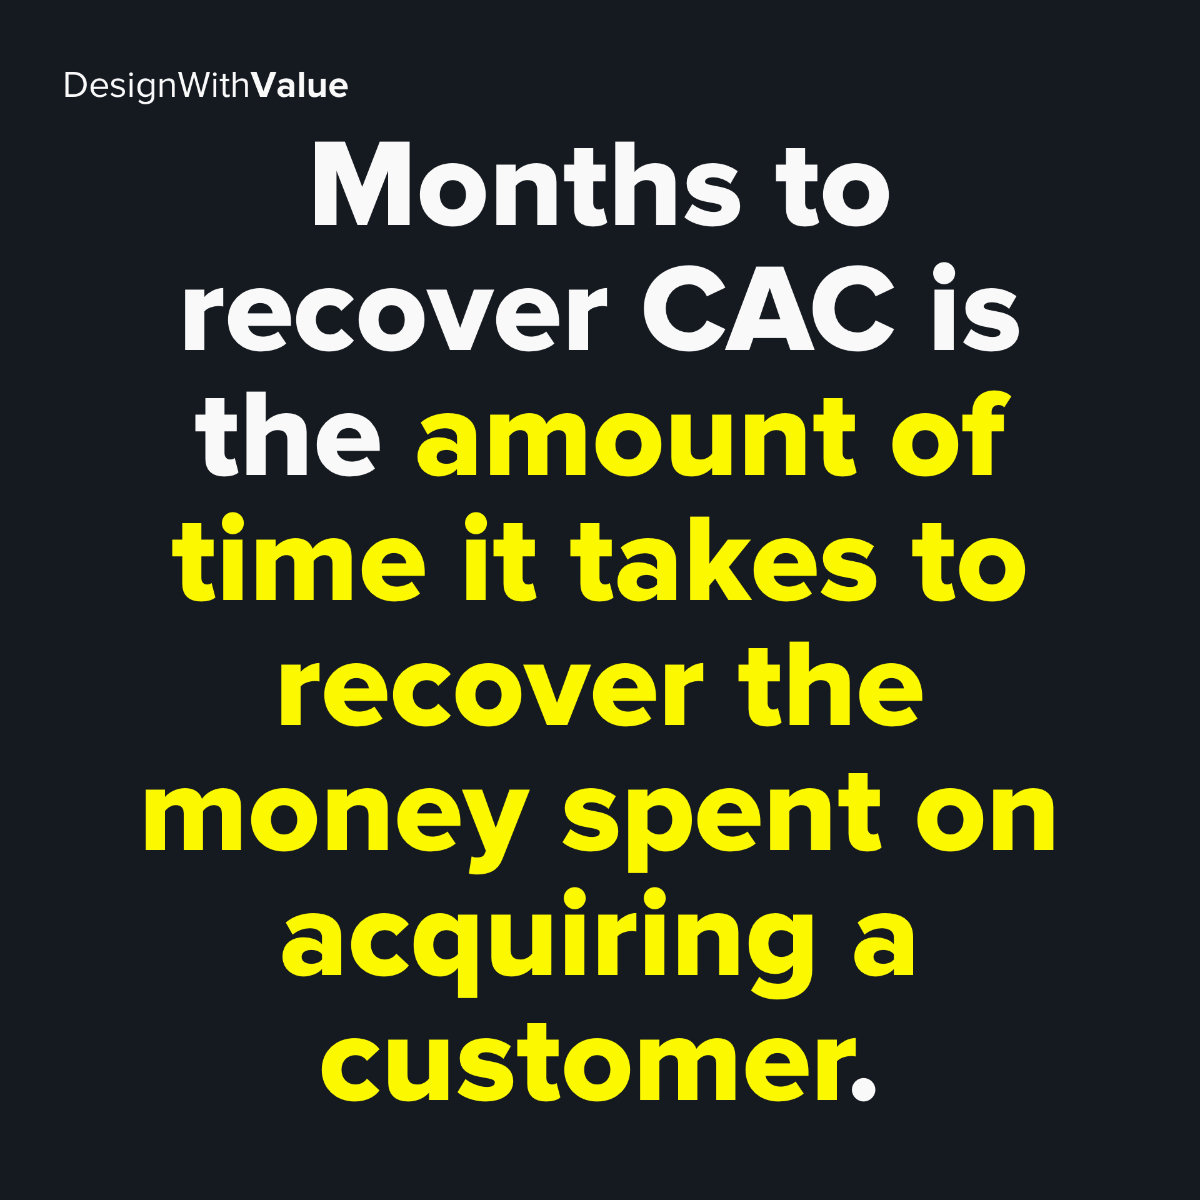 Months to recover CAC is the amount of time it takes to recover the money spent on acquiring a customer